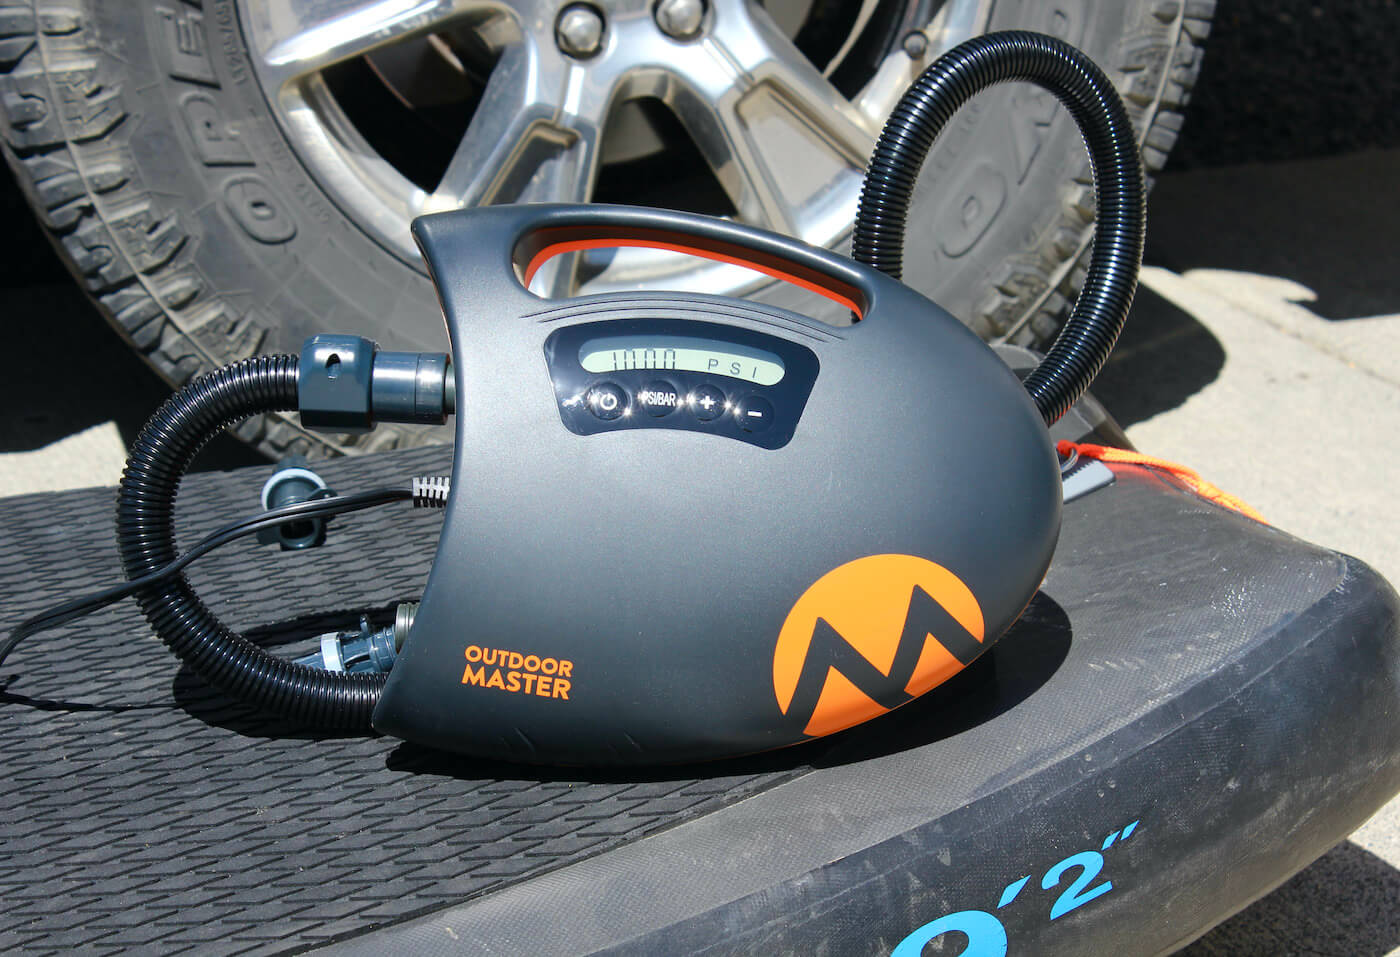 This review photo shows the Outdoor Master The Shark II SUP Air Pump.